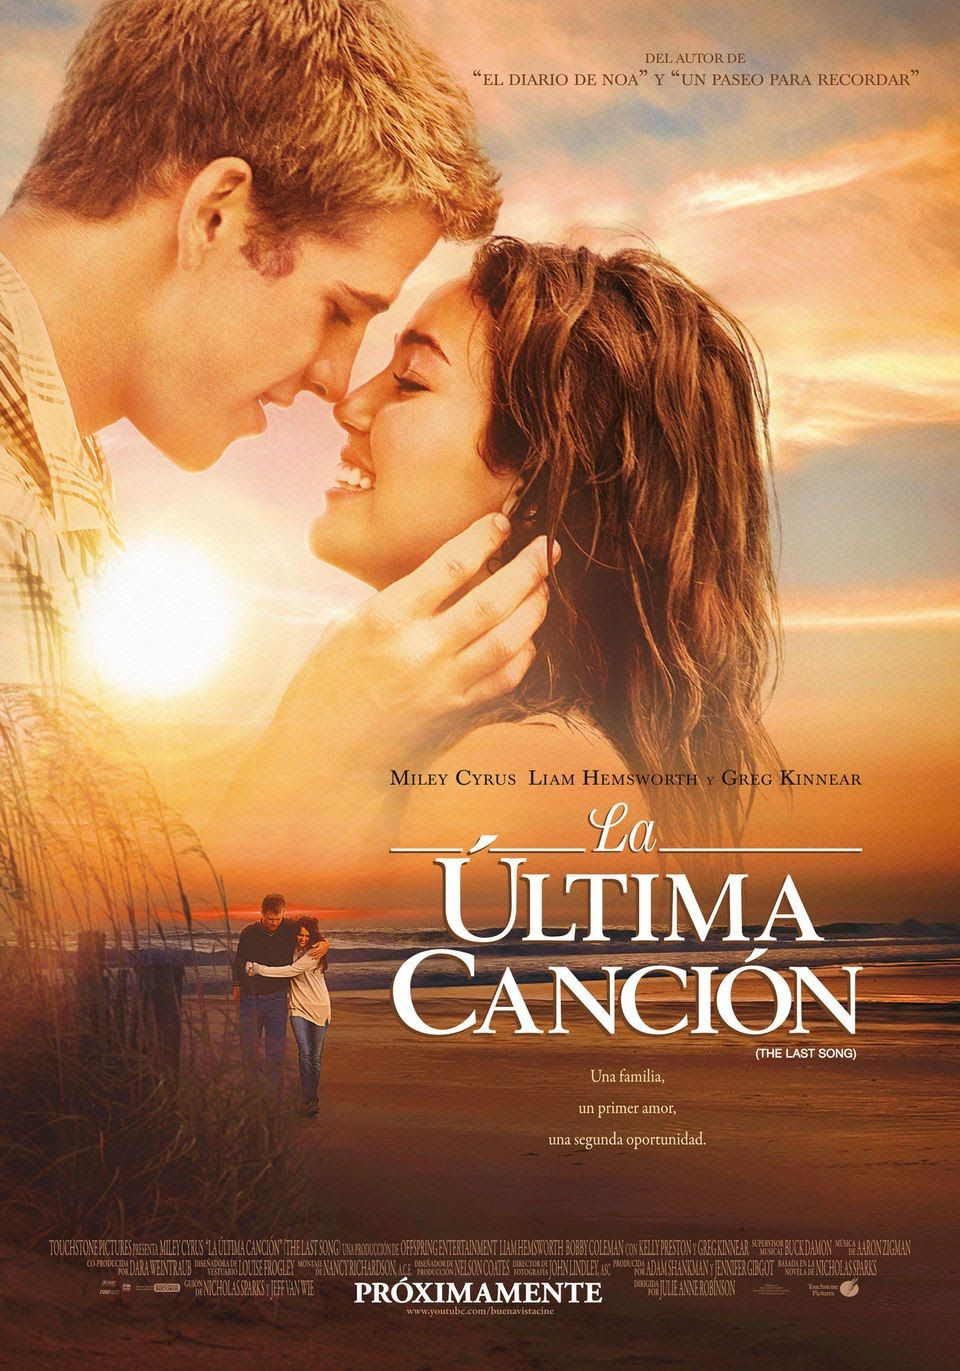 La última Canción Película Completa En Español The Last Song Movie The Last Song Film Sparks Movies